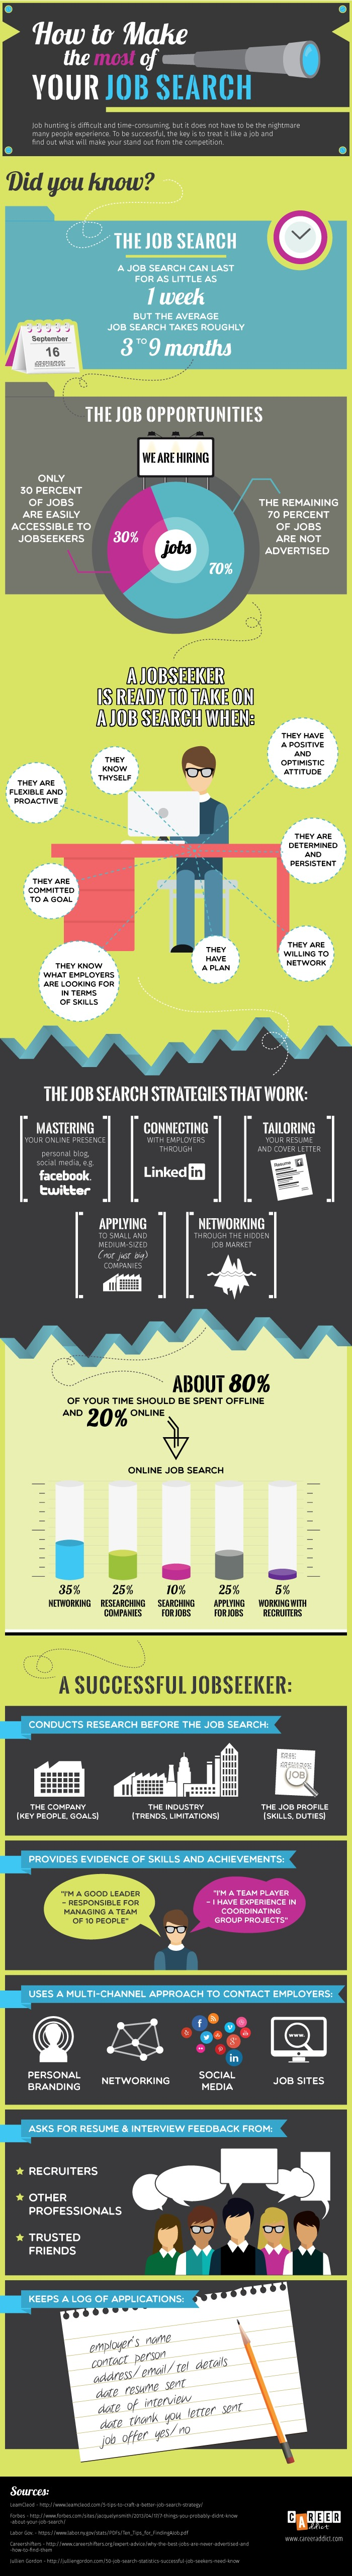 how to make the most of your job search infographic